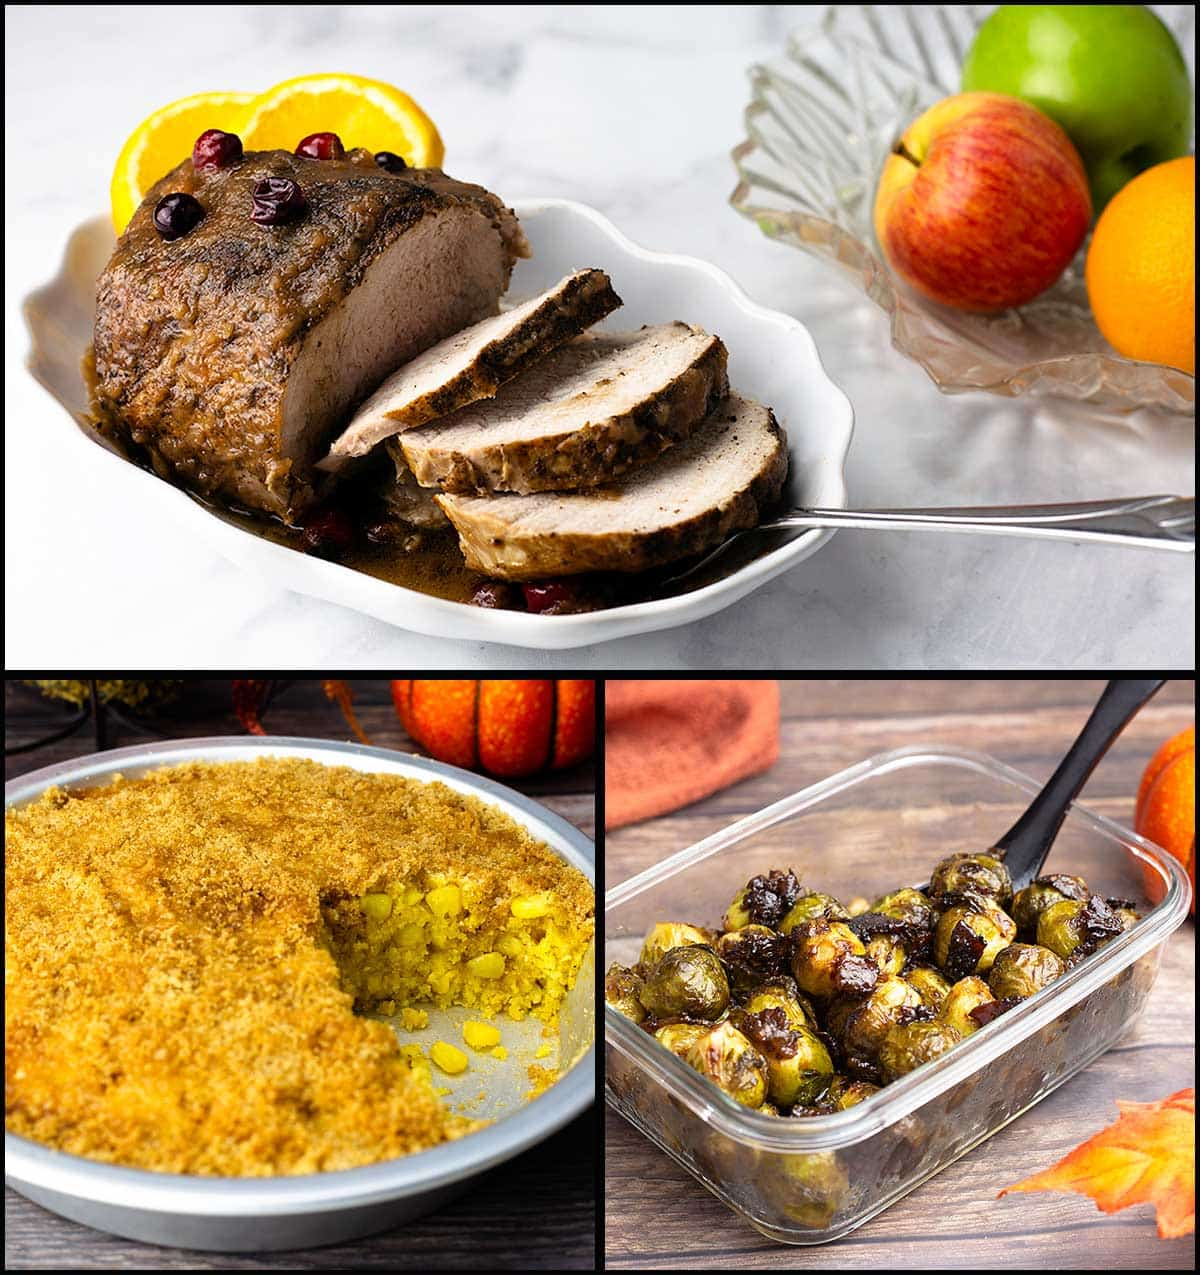 Collage of pictures showing pork loin with apple gravy, corn pudding, and candied brussels sprouts